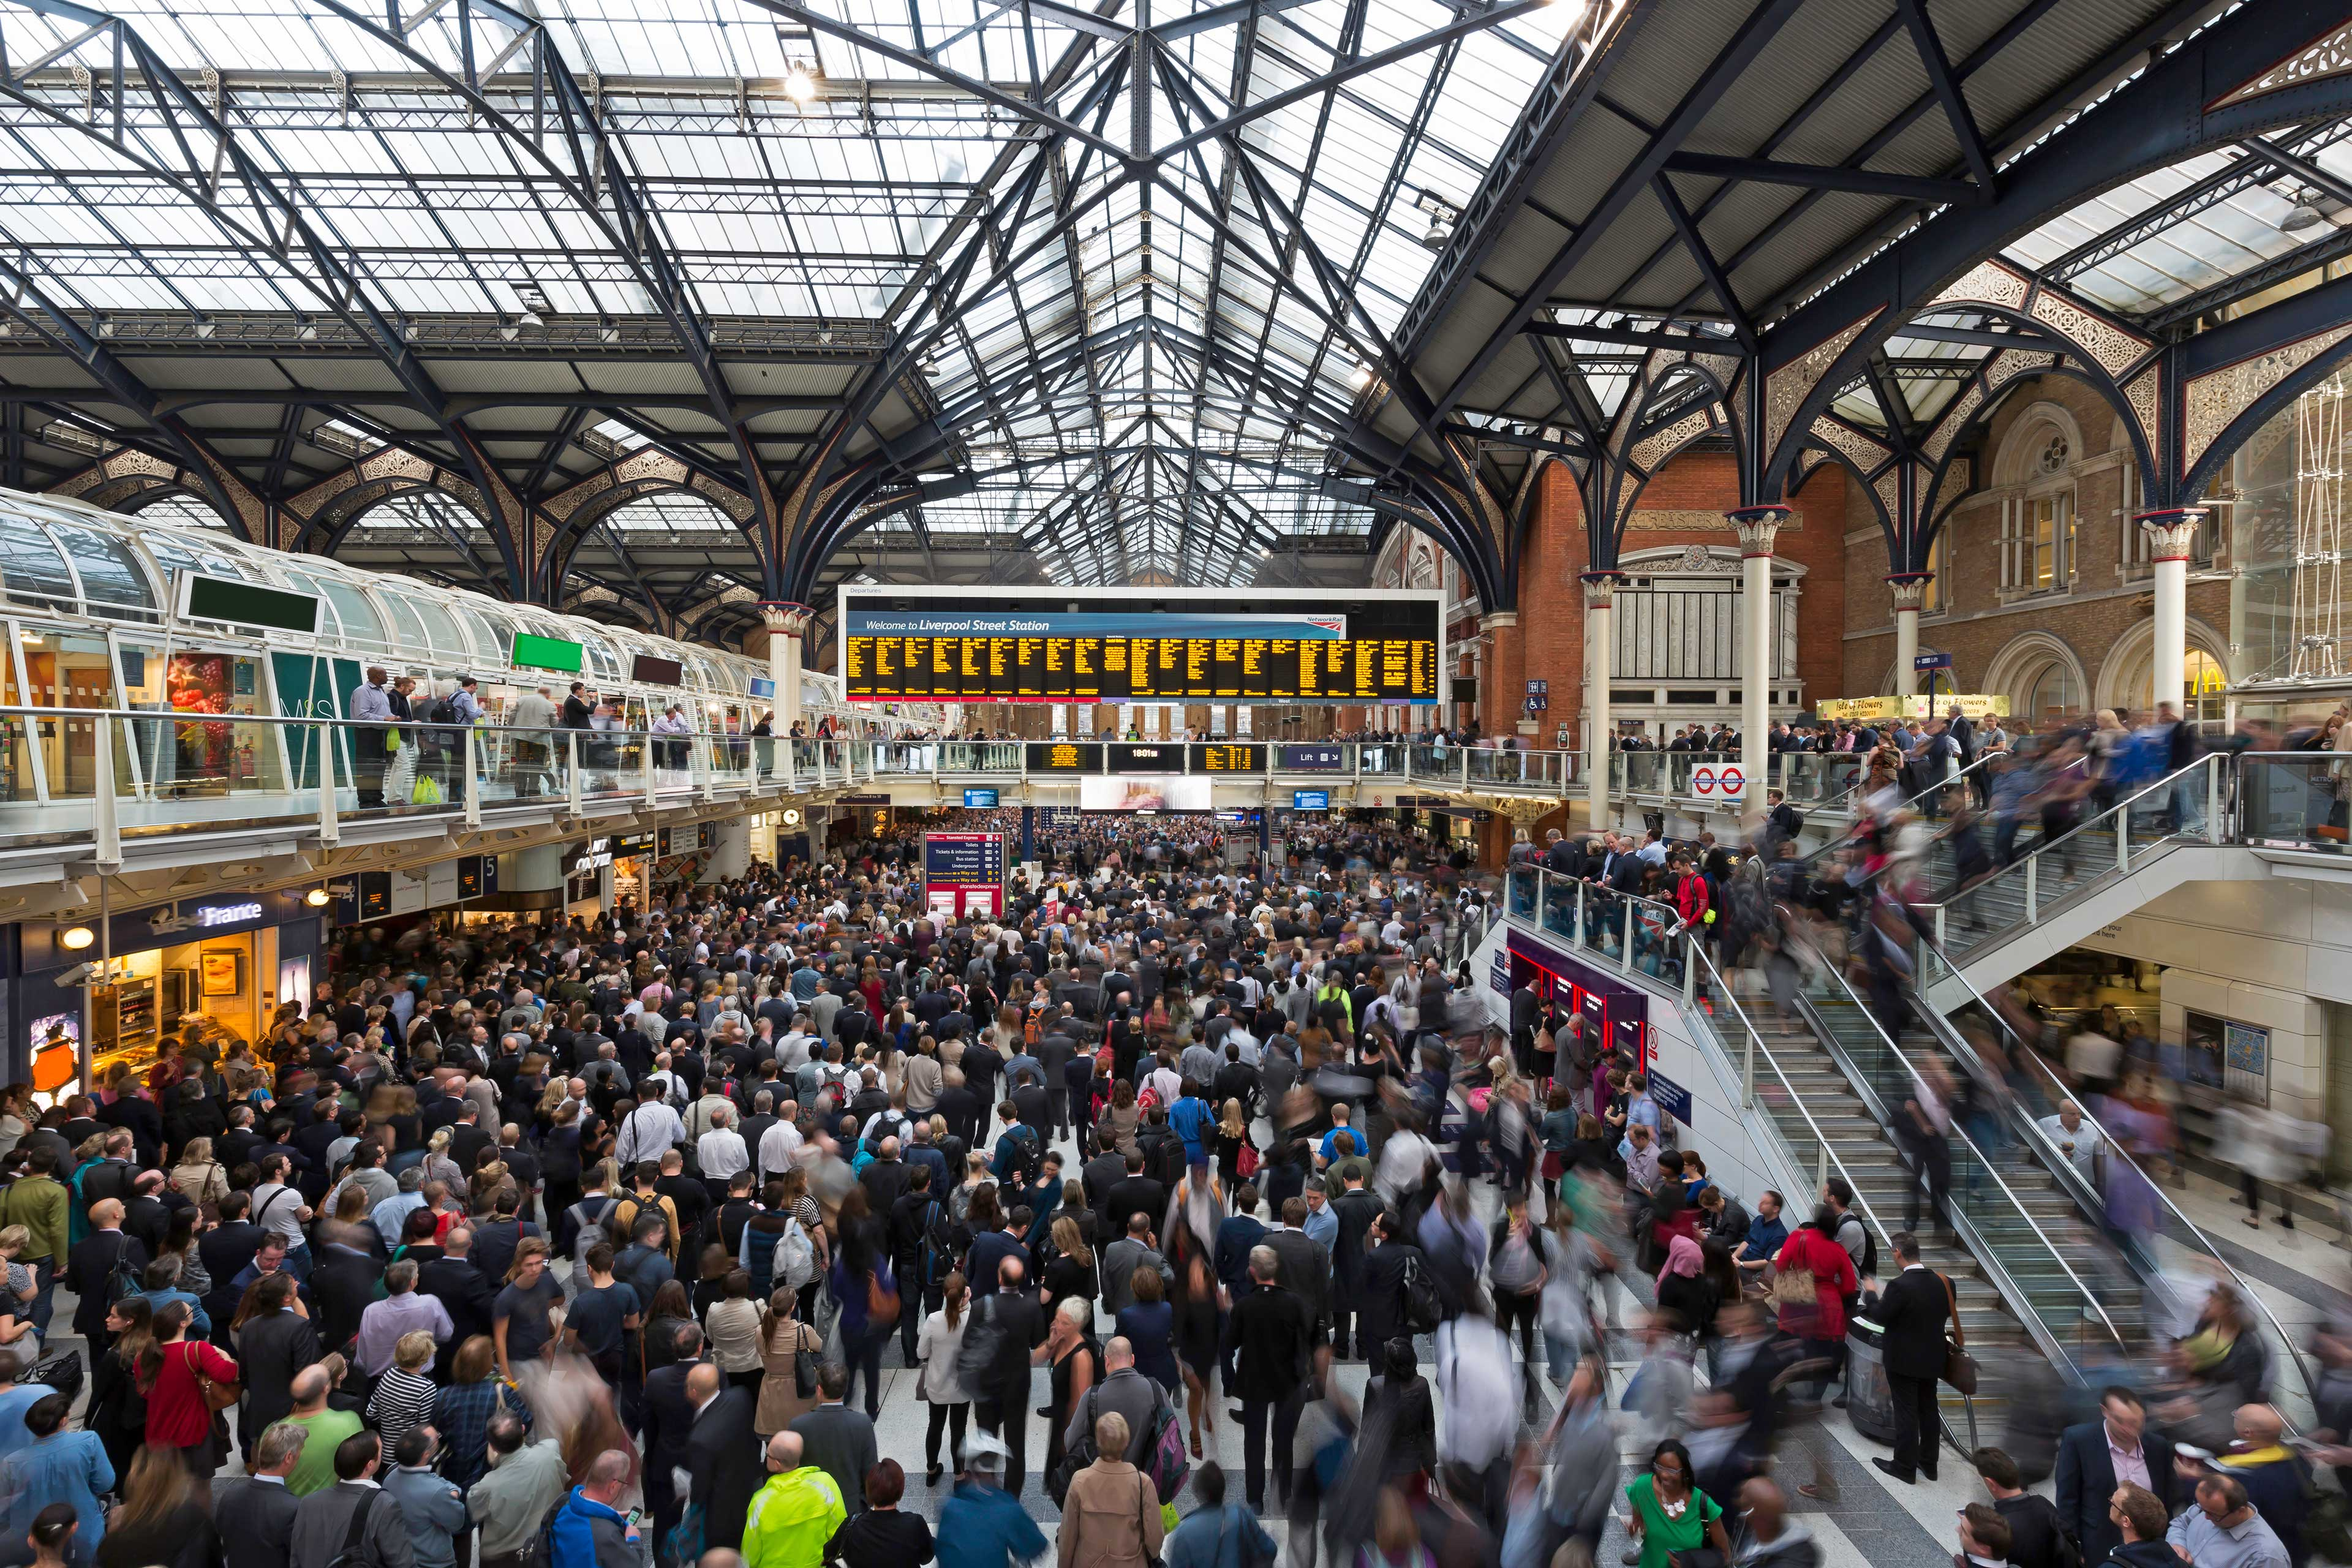 EY - Crowd on Liverpool Street station concourse, London